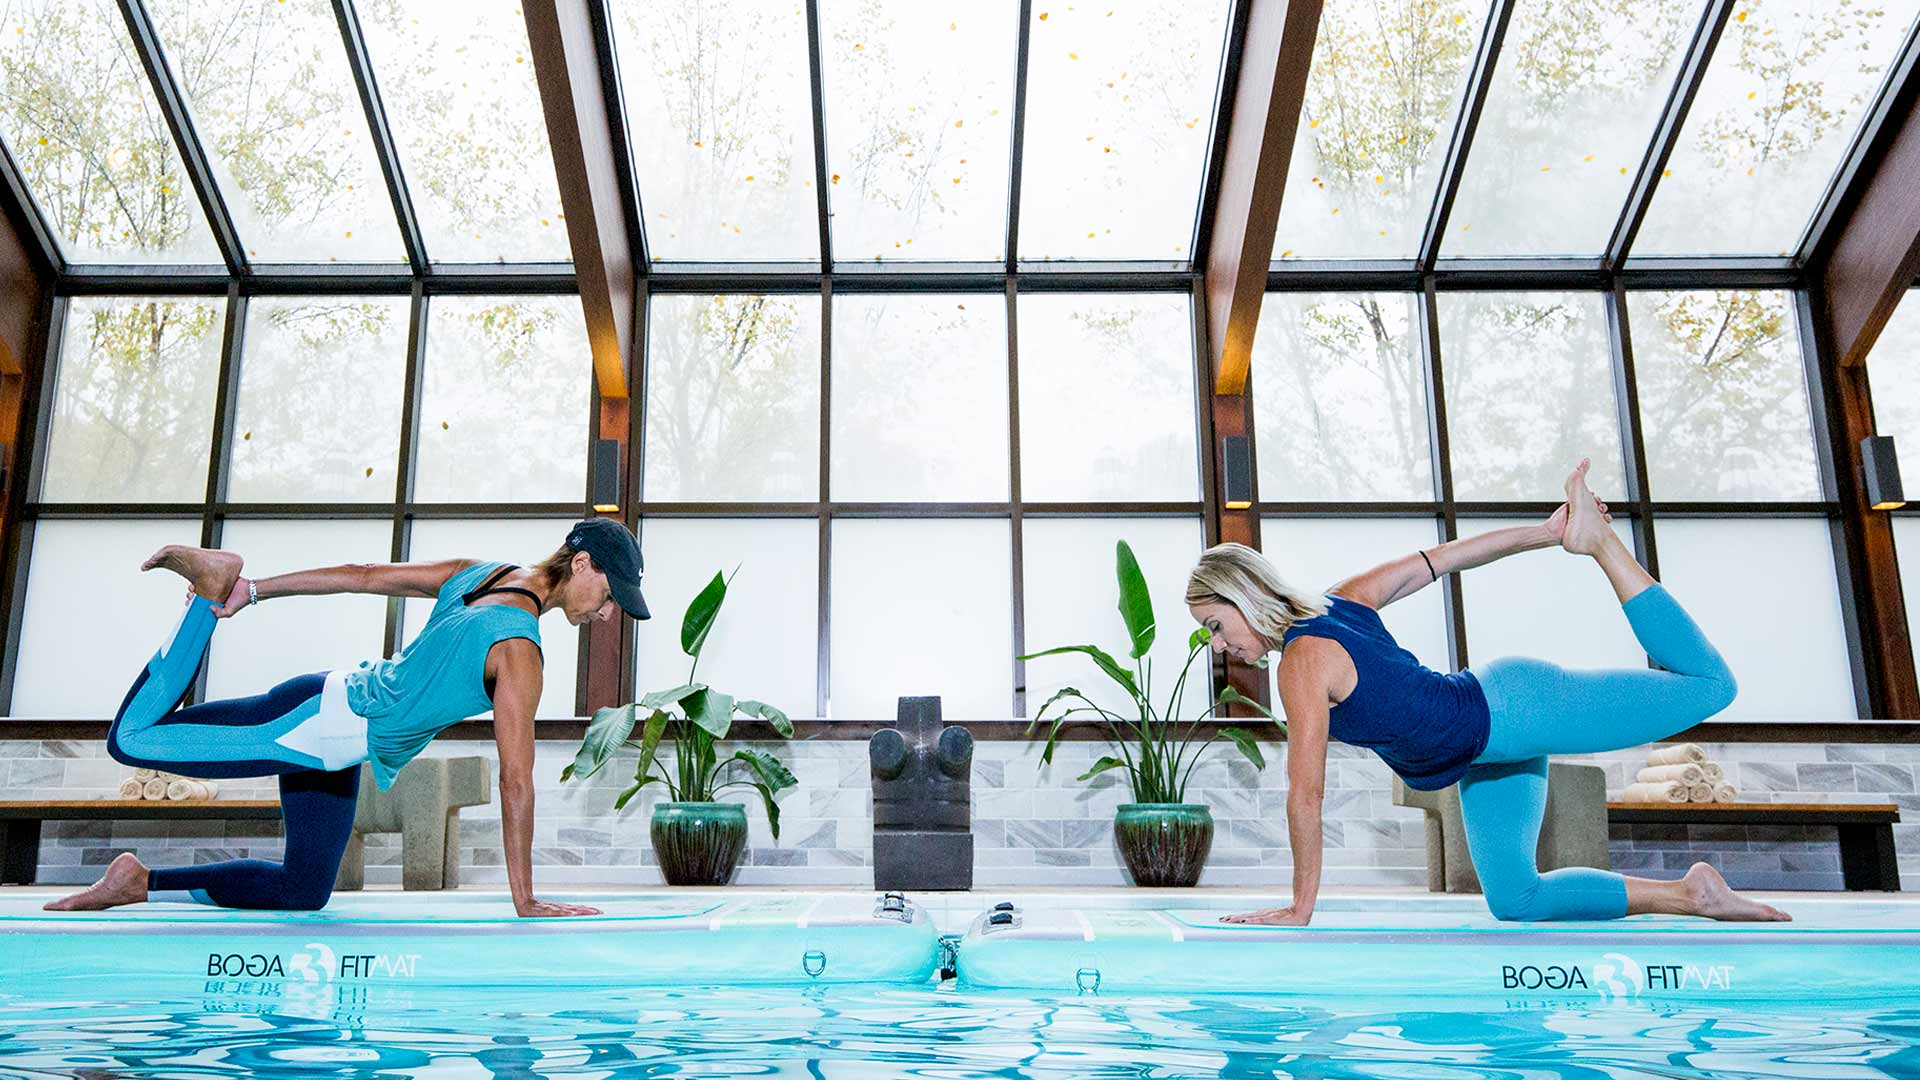 two people in blue workout gear are stretching by the edge of a pool